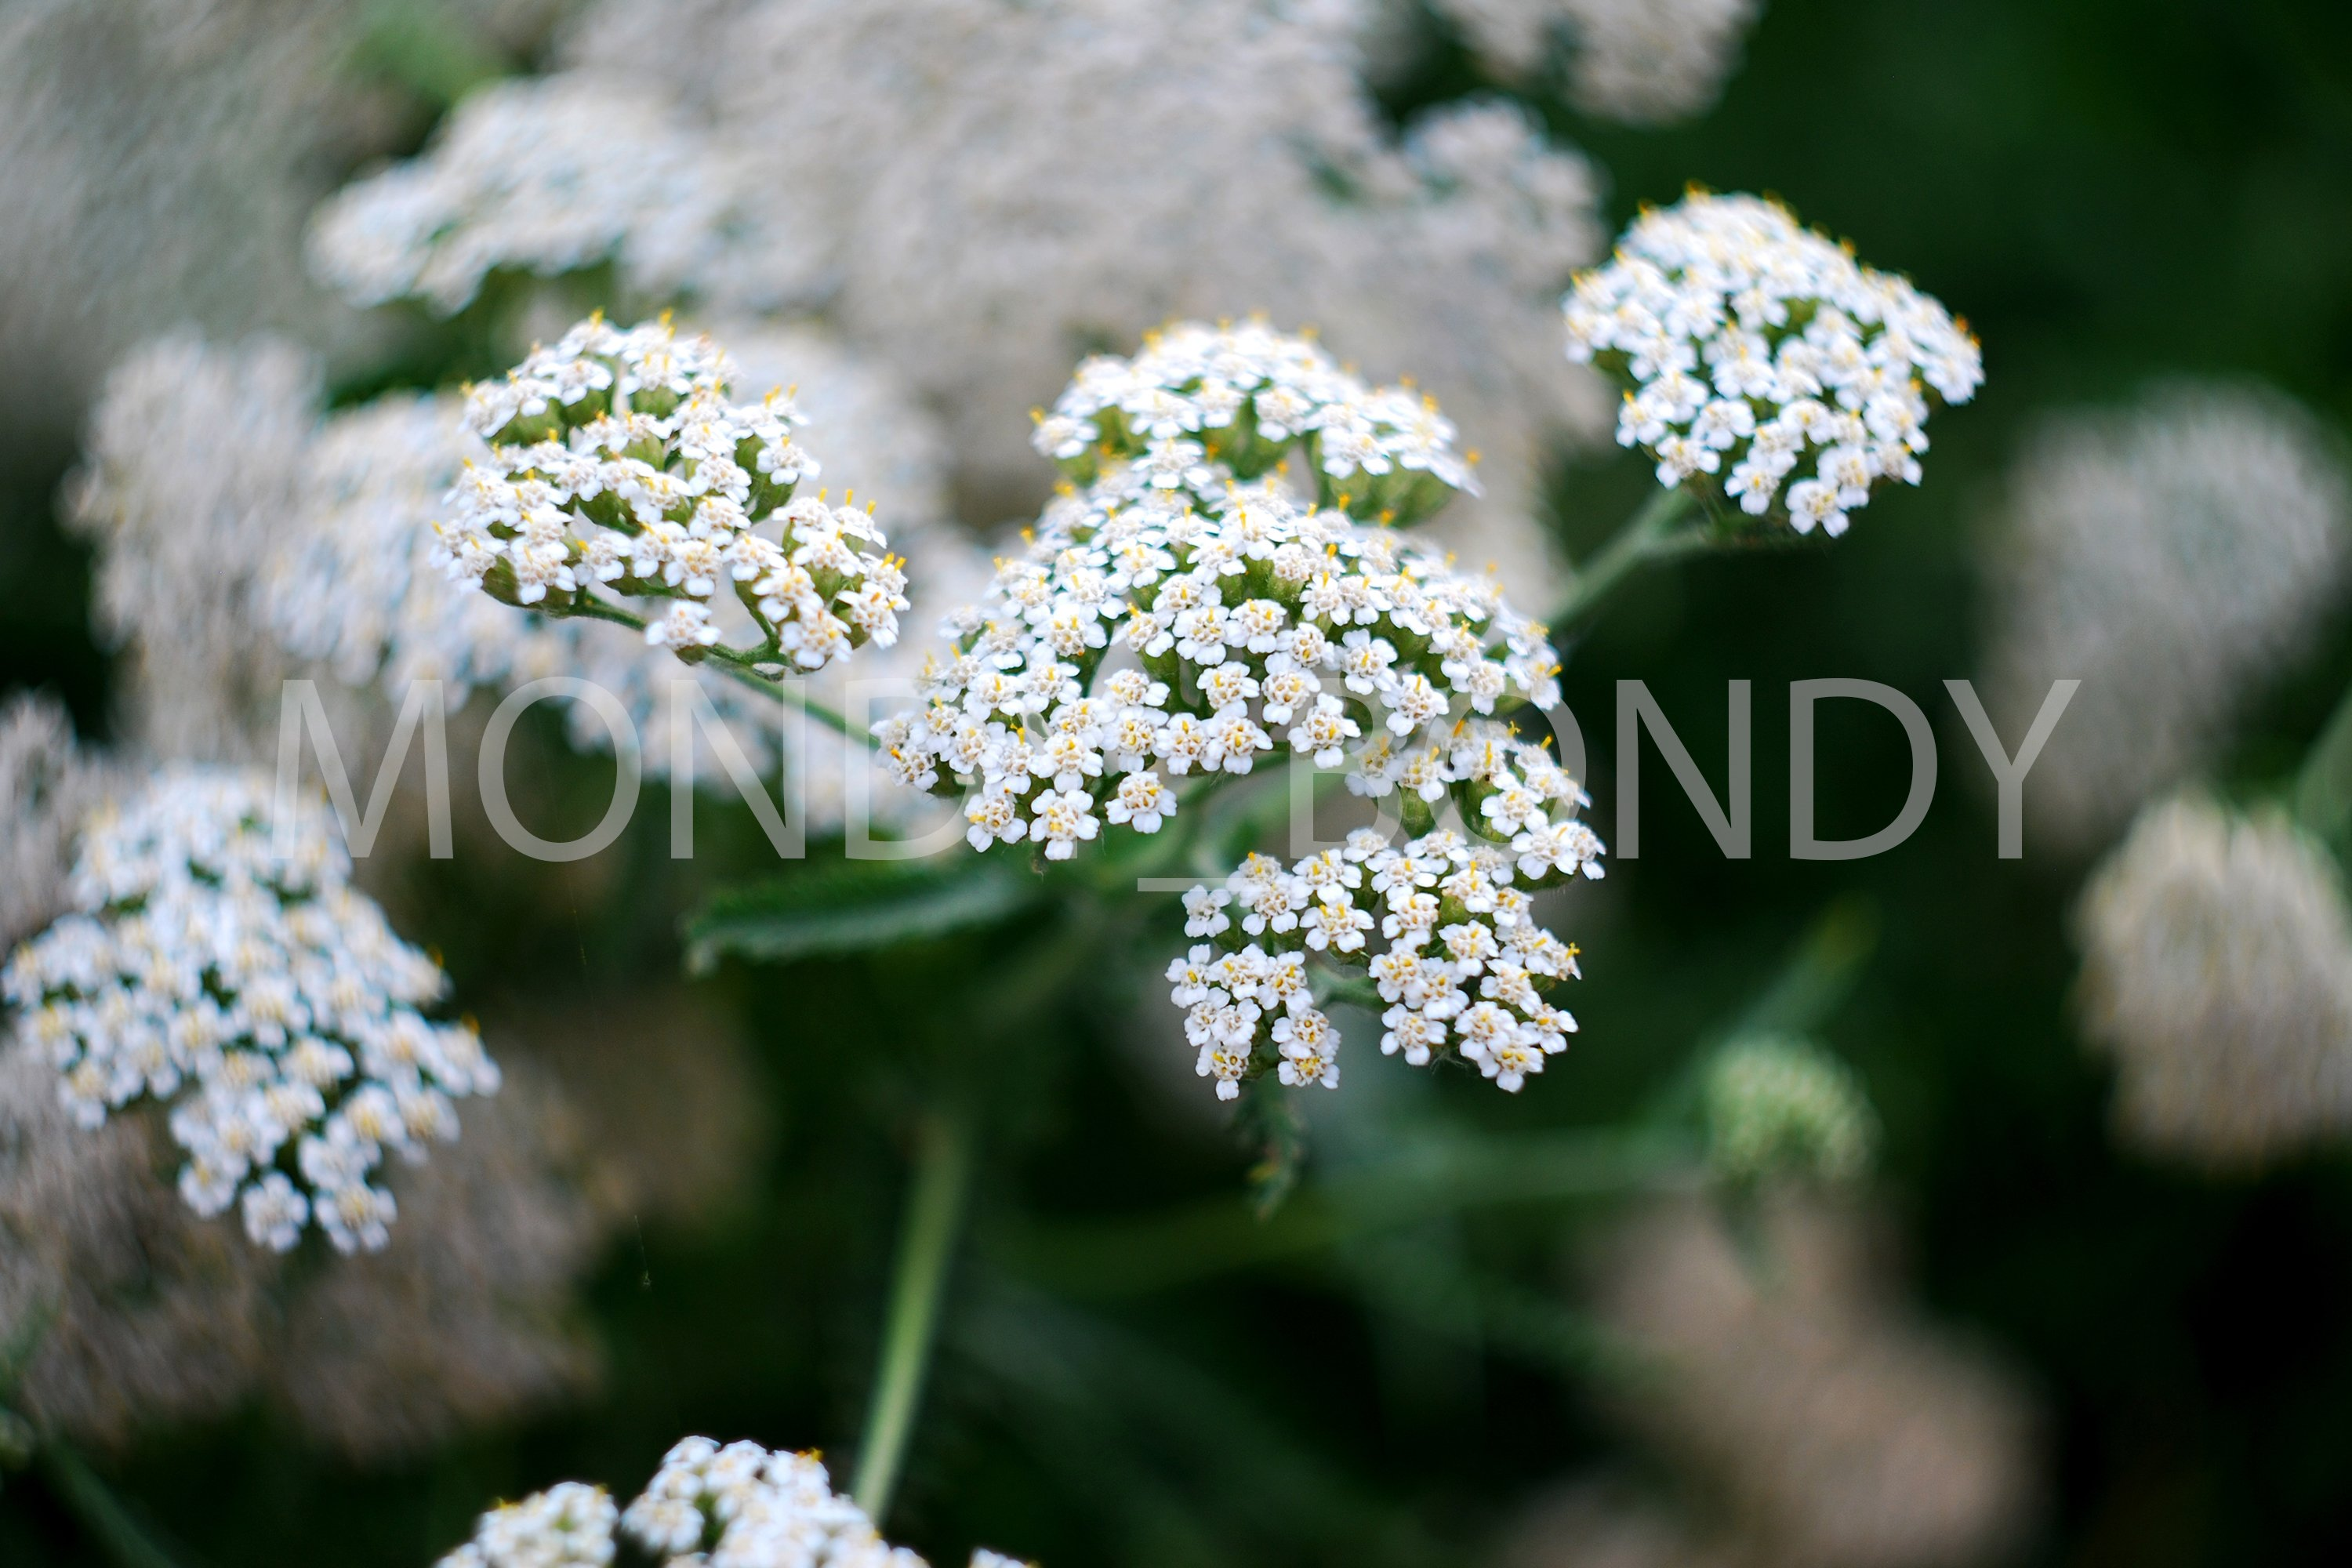 Small flowers and plants close up example image 1